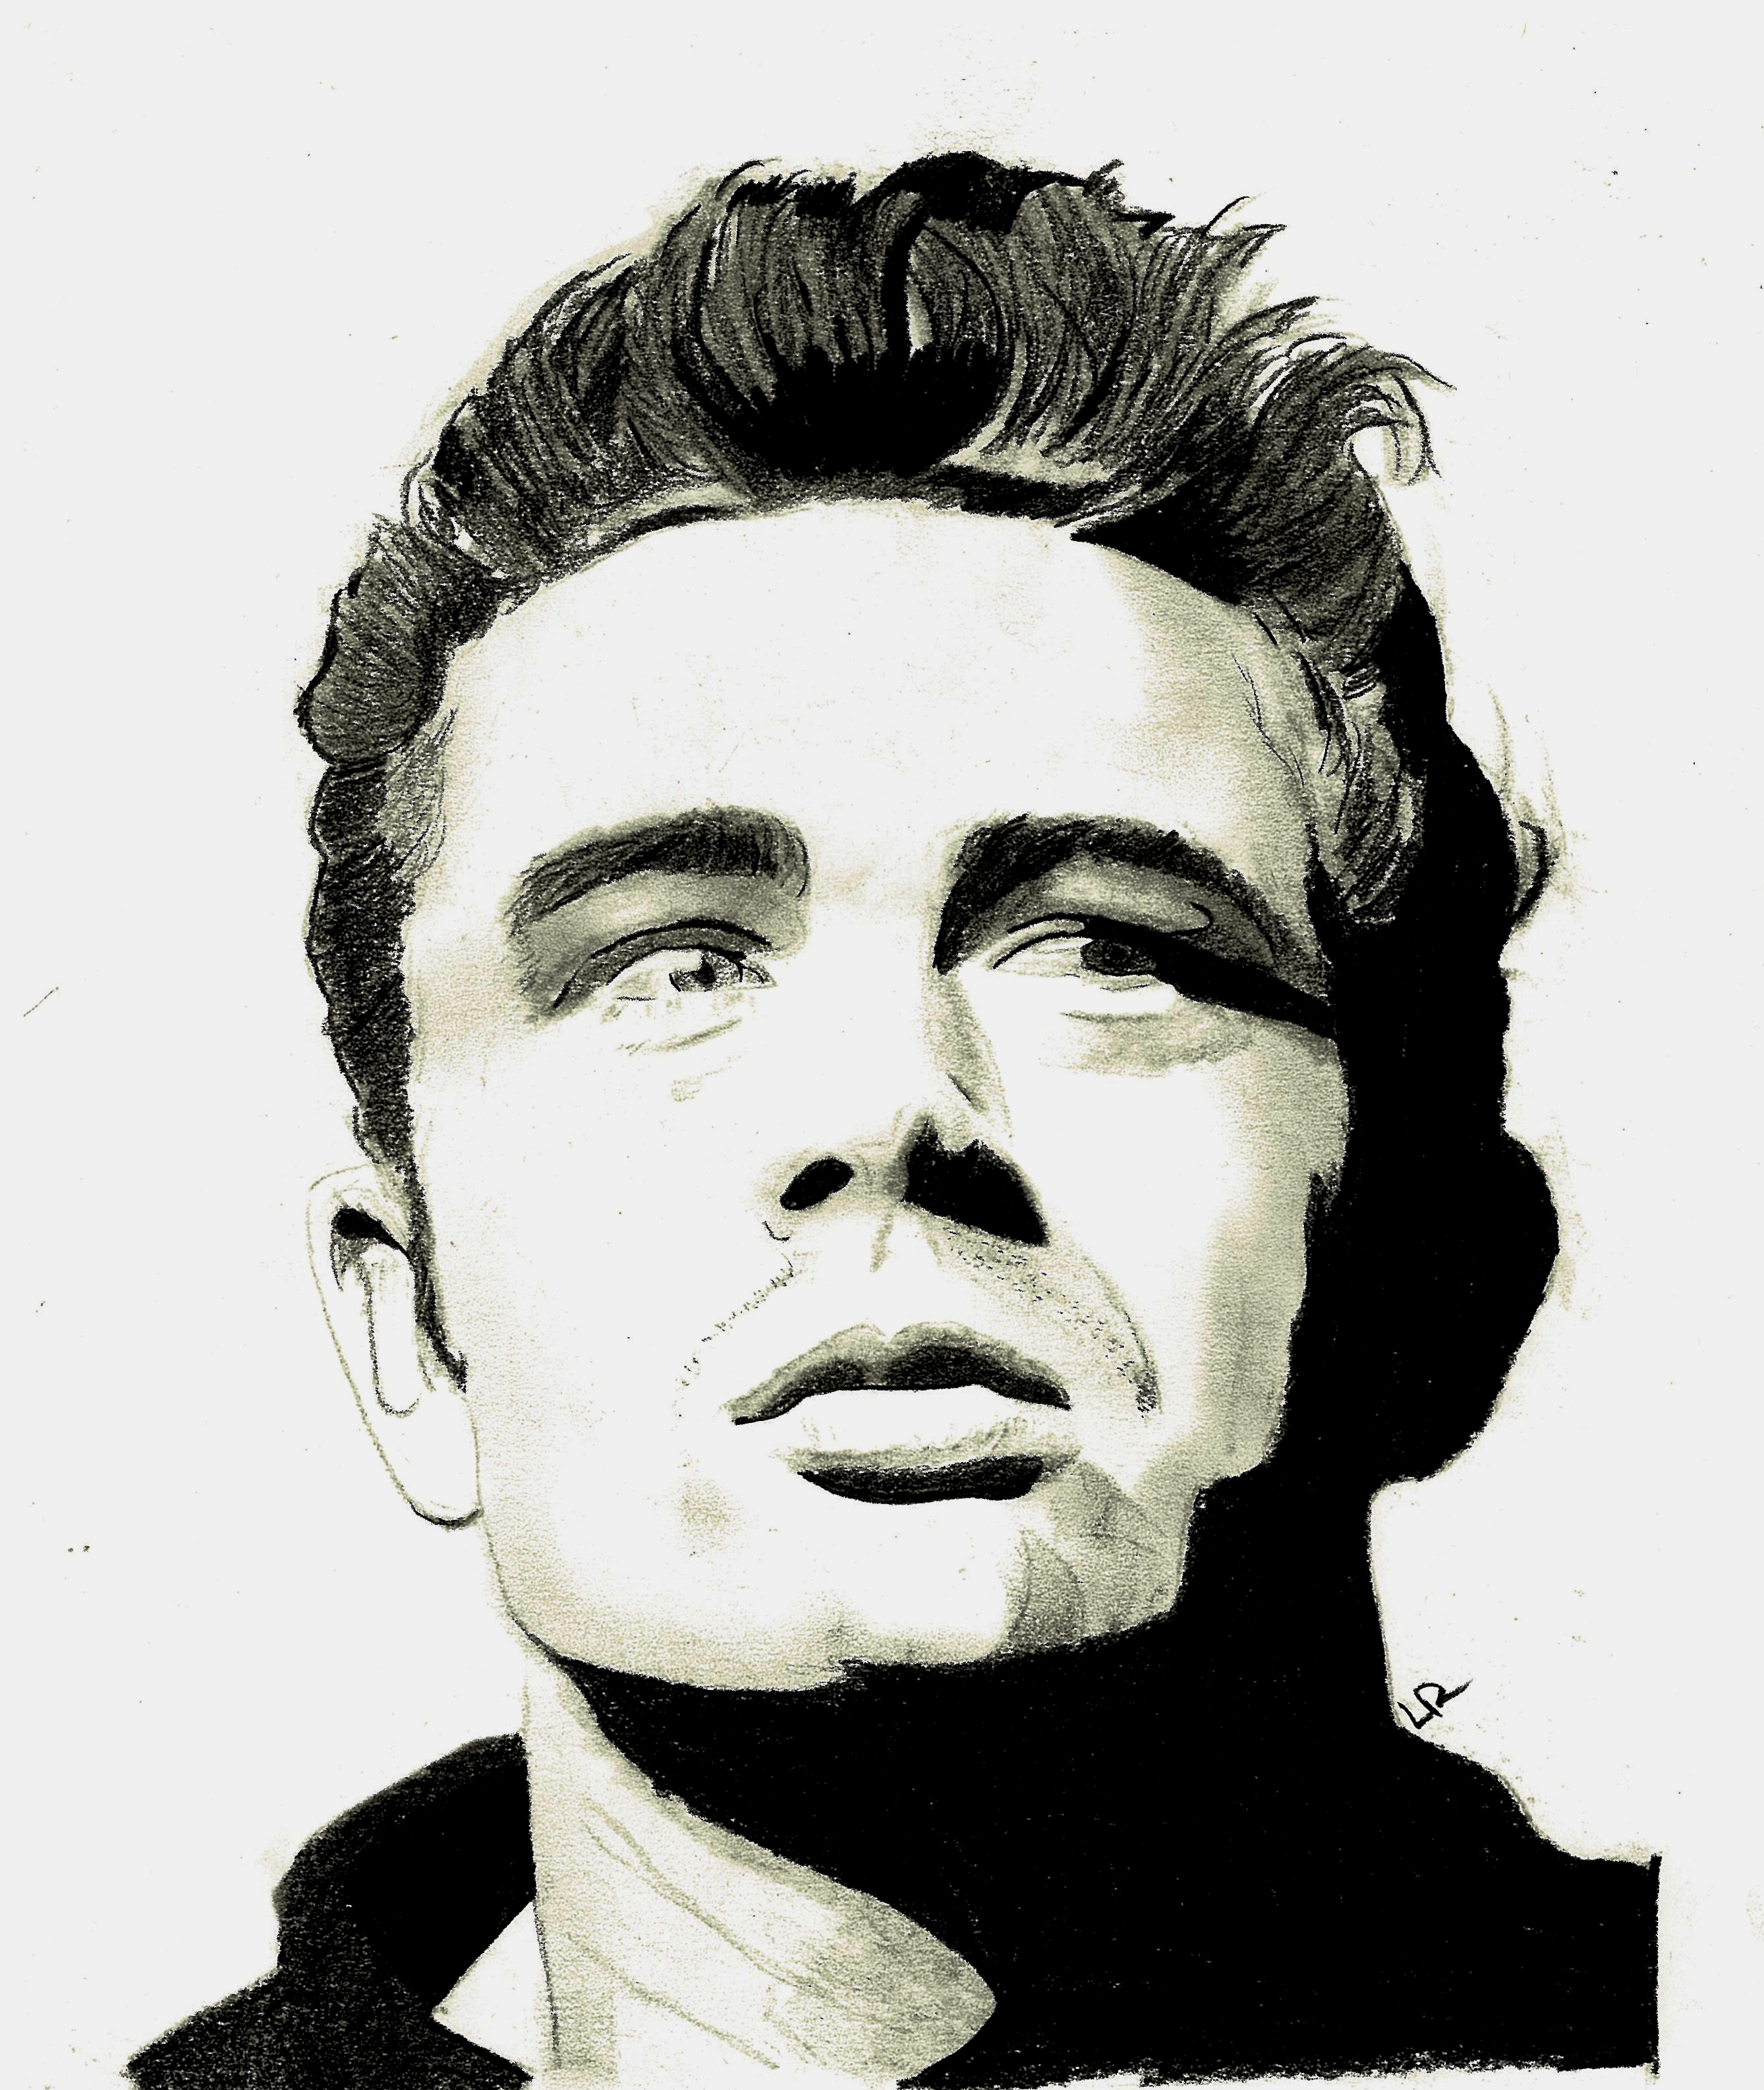 james dean black and white painting - photo #21